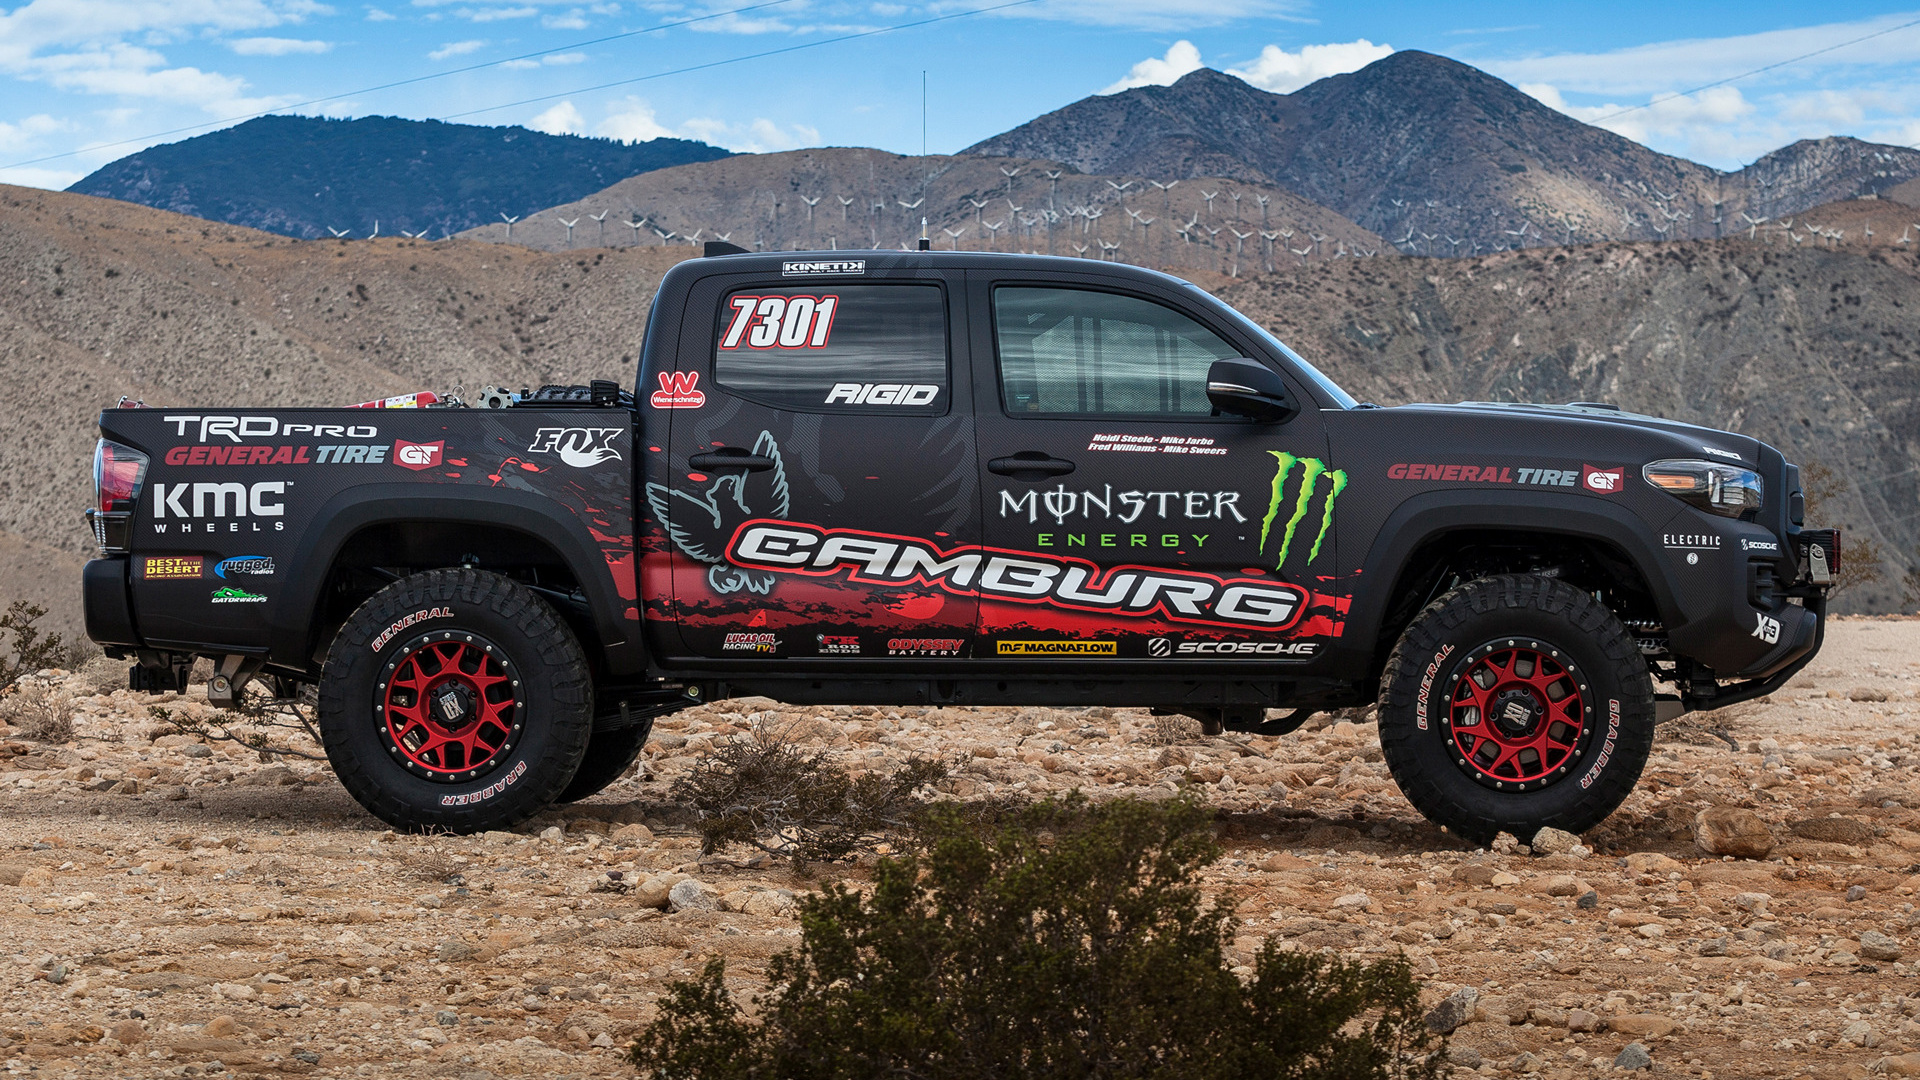 Trd Pro Tundra >> Toyota Tacoma TRD Pro Race Truck (2016) Wallpapers and HD ...